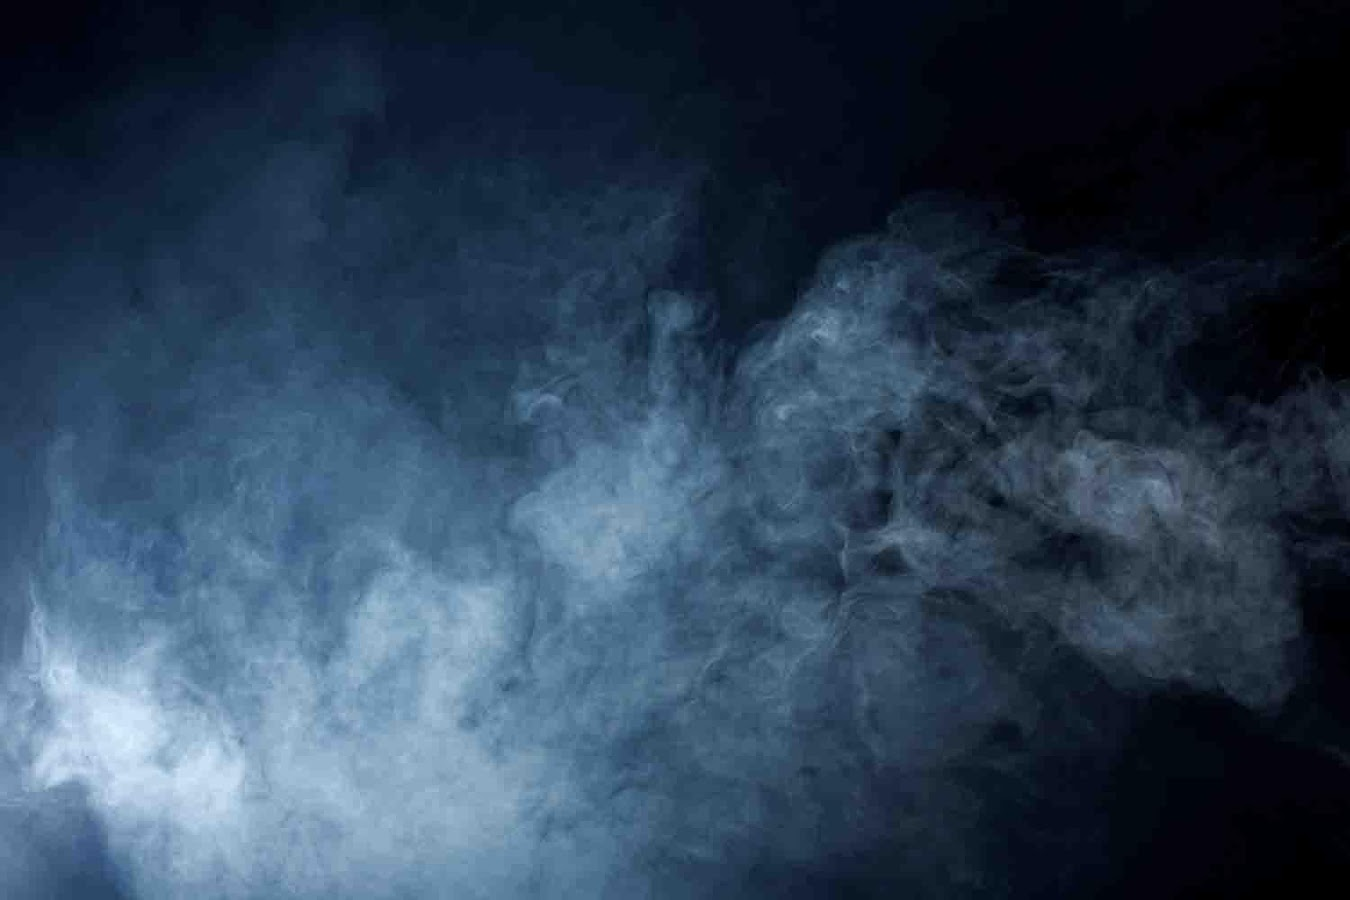 Smoke Wallpaper   Android Apps on Google Play 1350x900